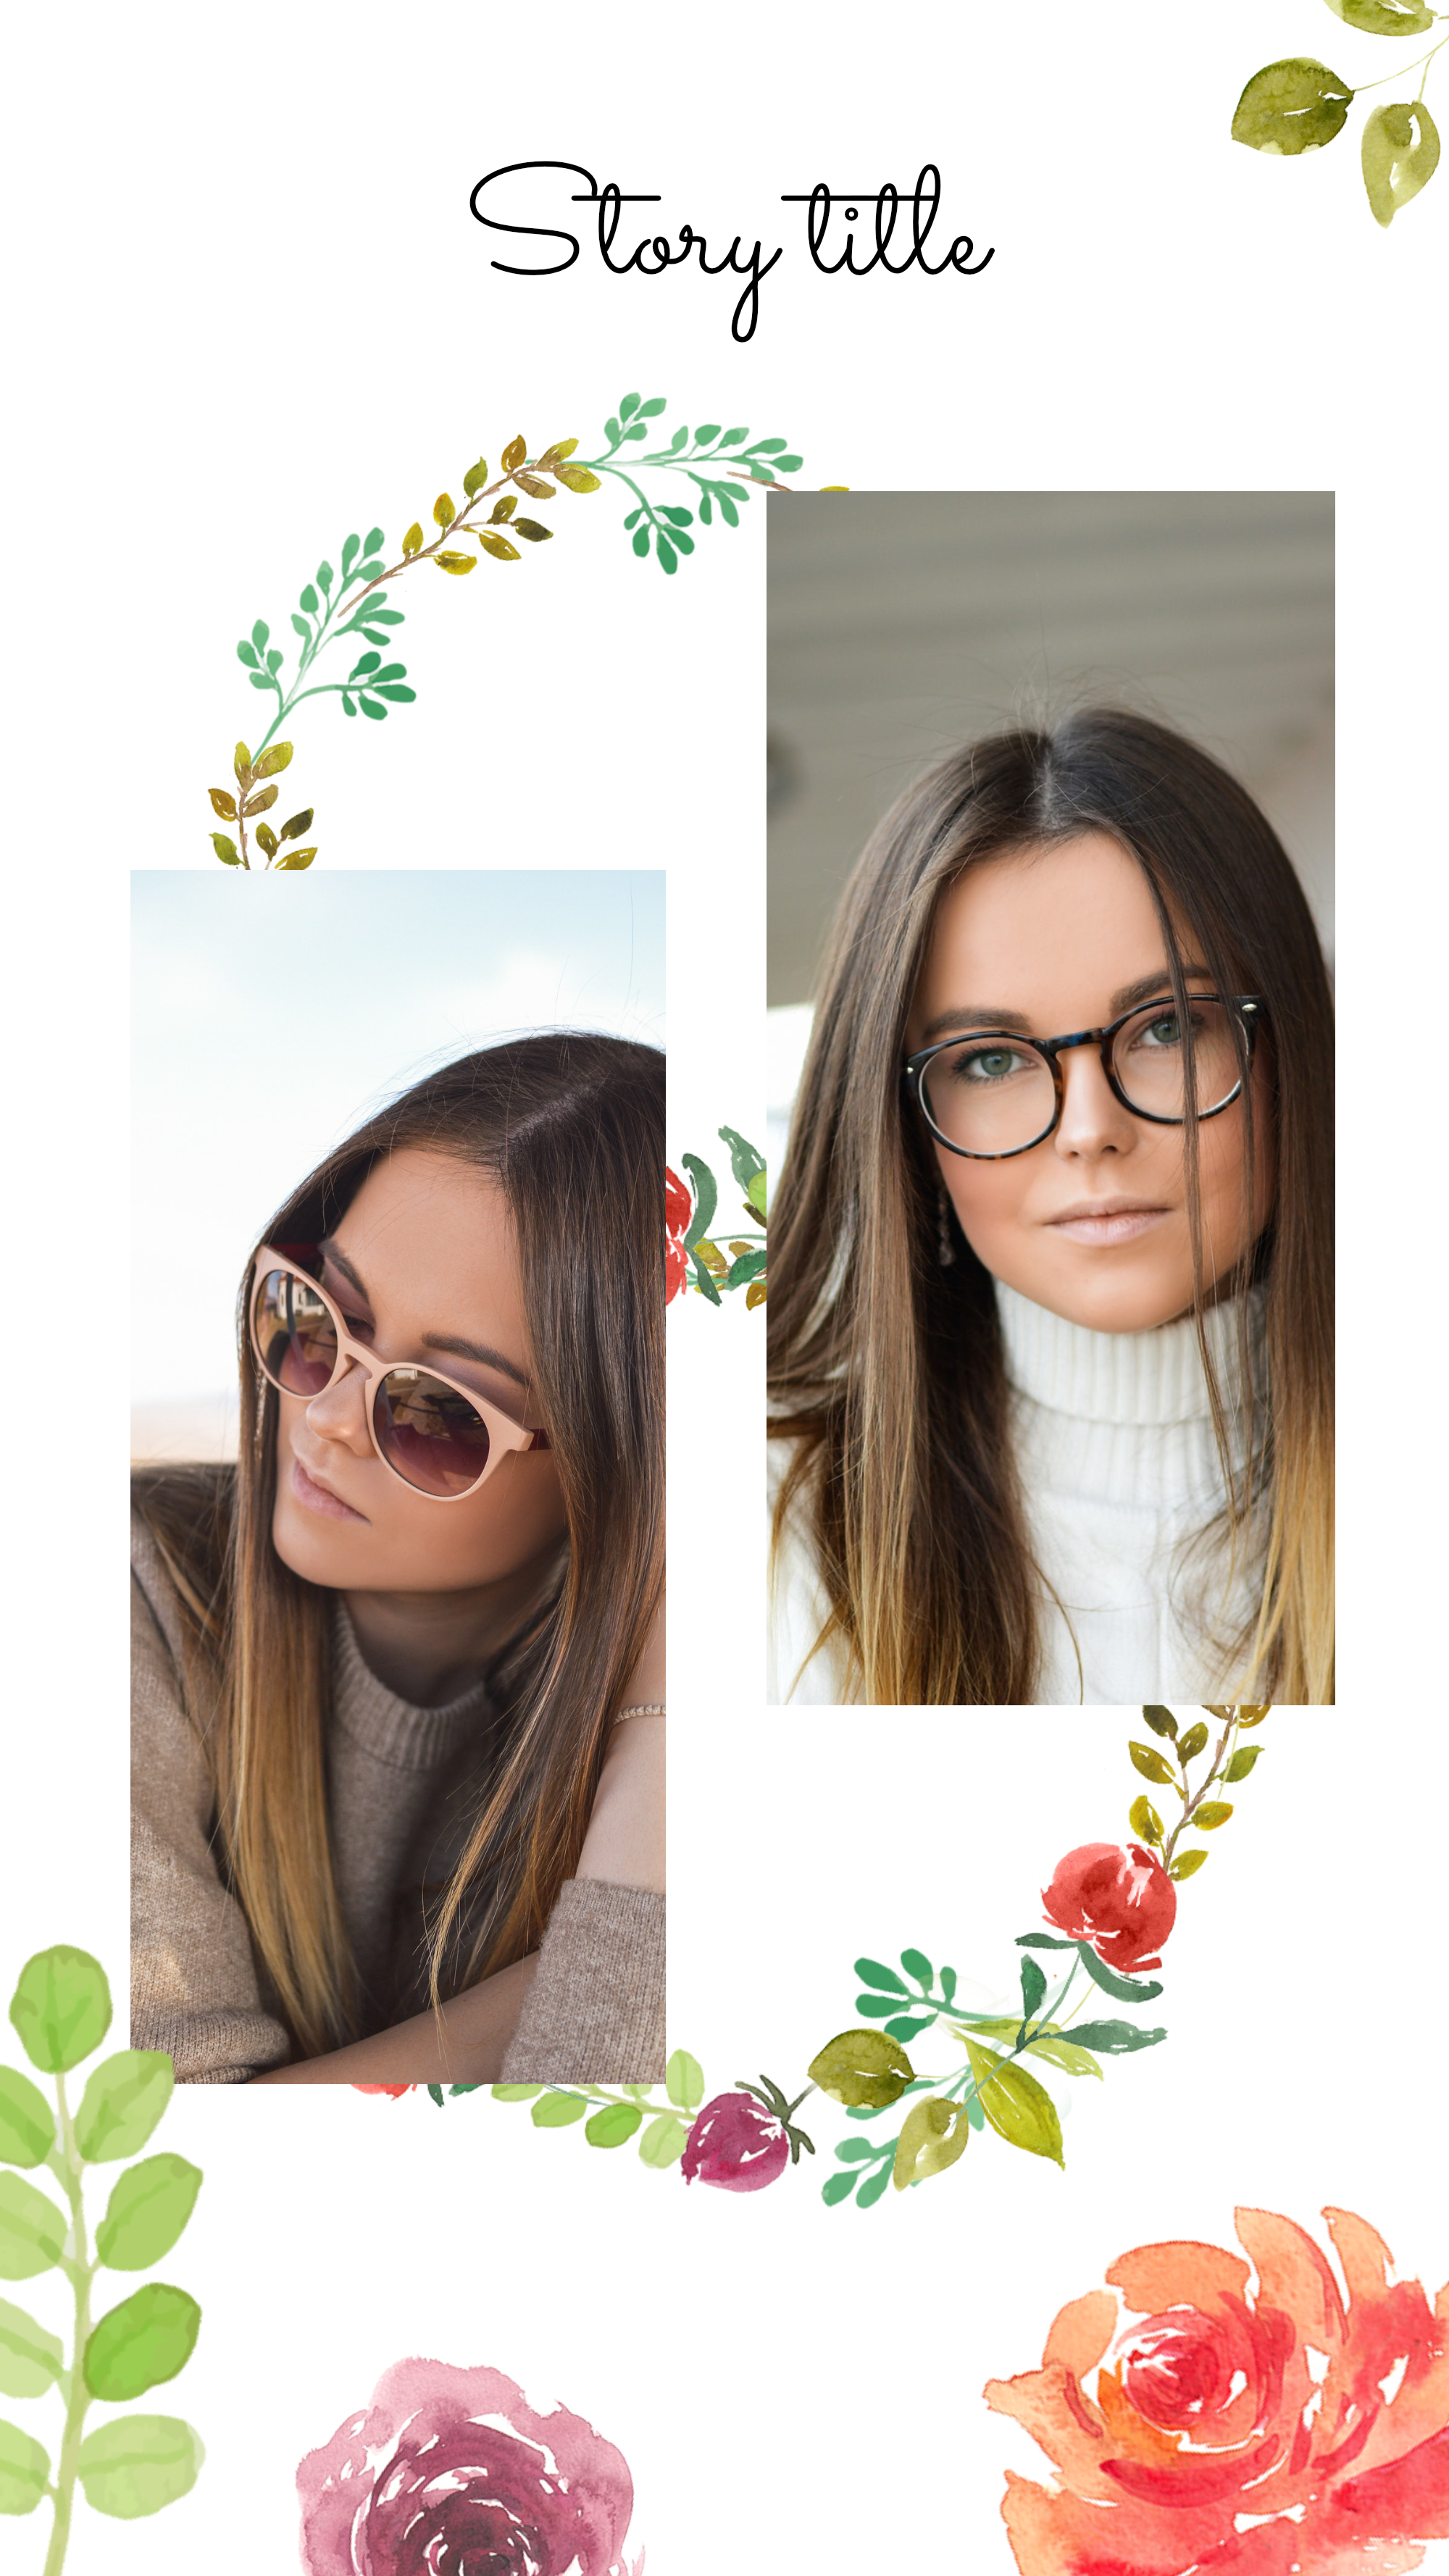 #pastelflowers collection - Story title Instagram Story Template